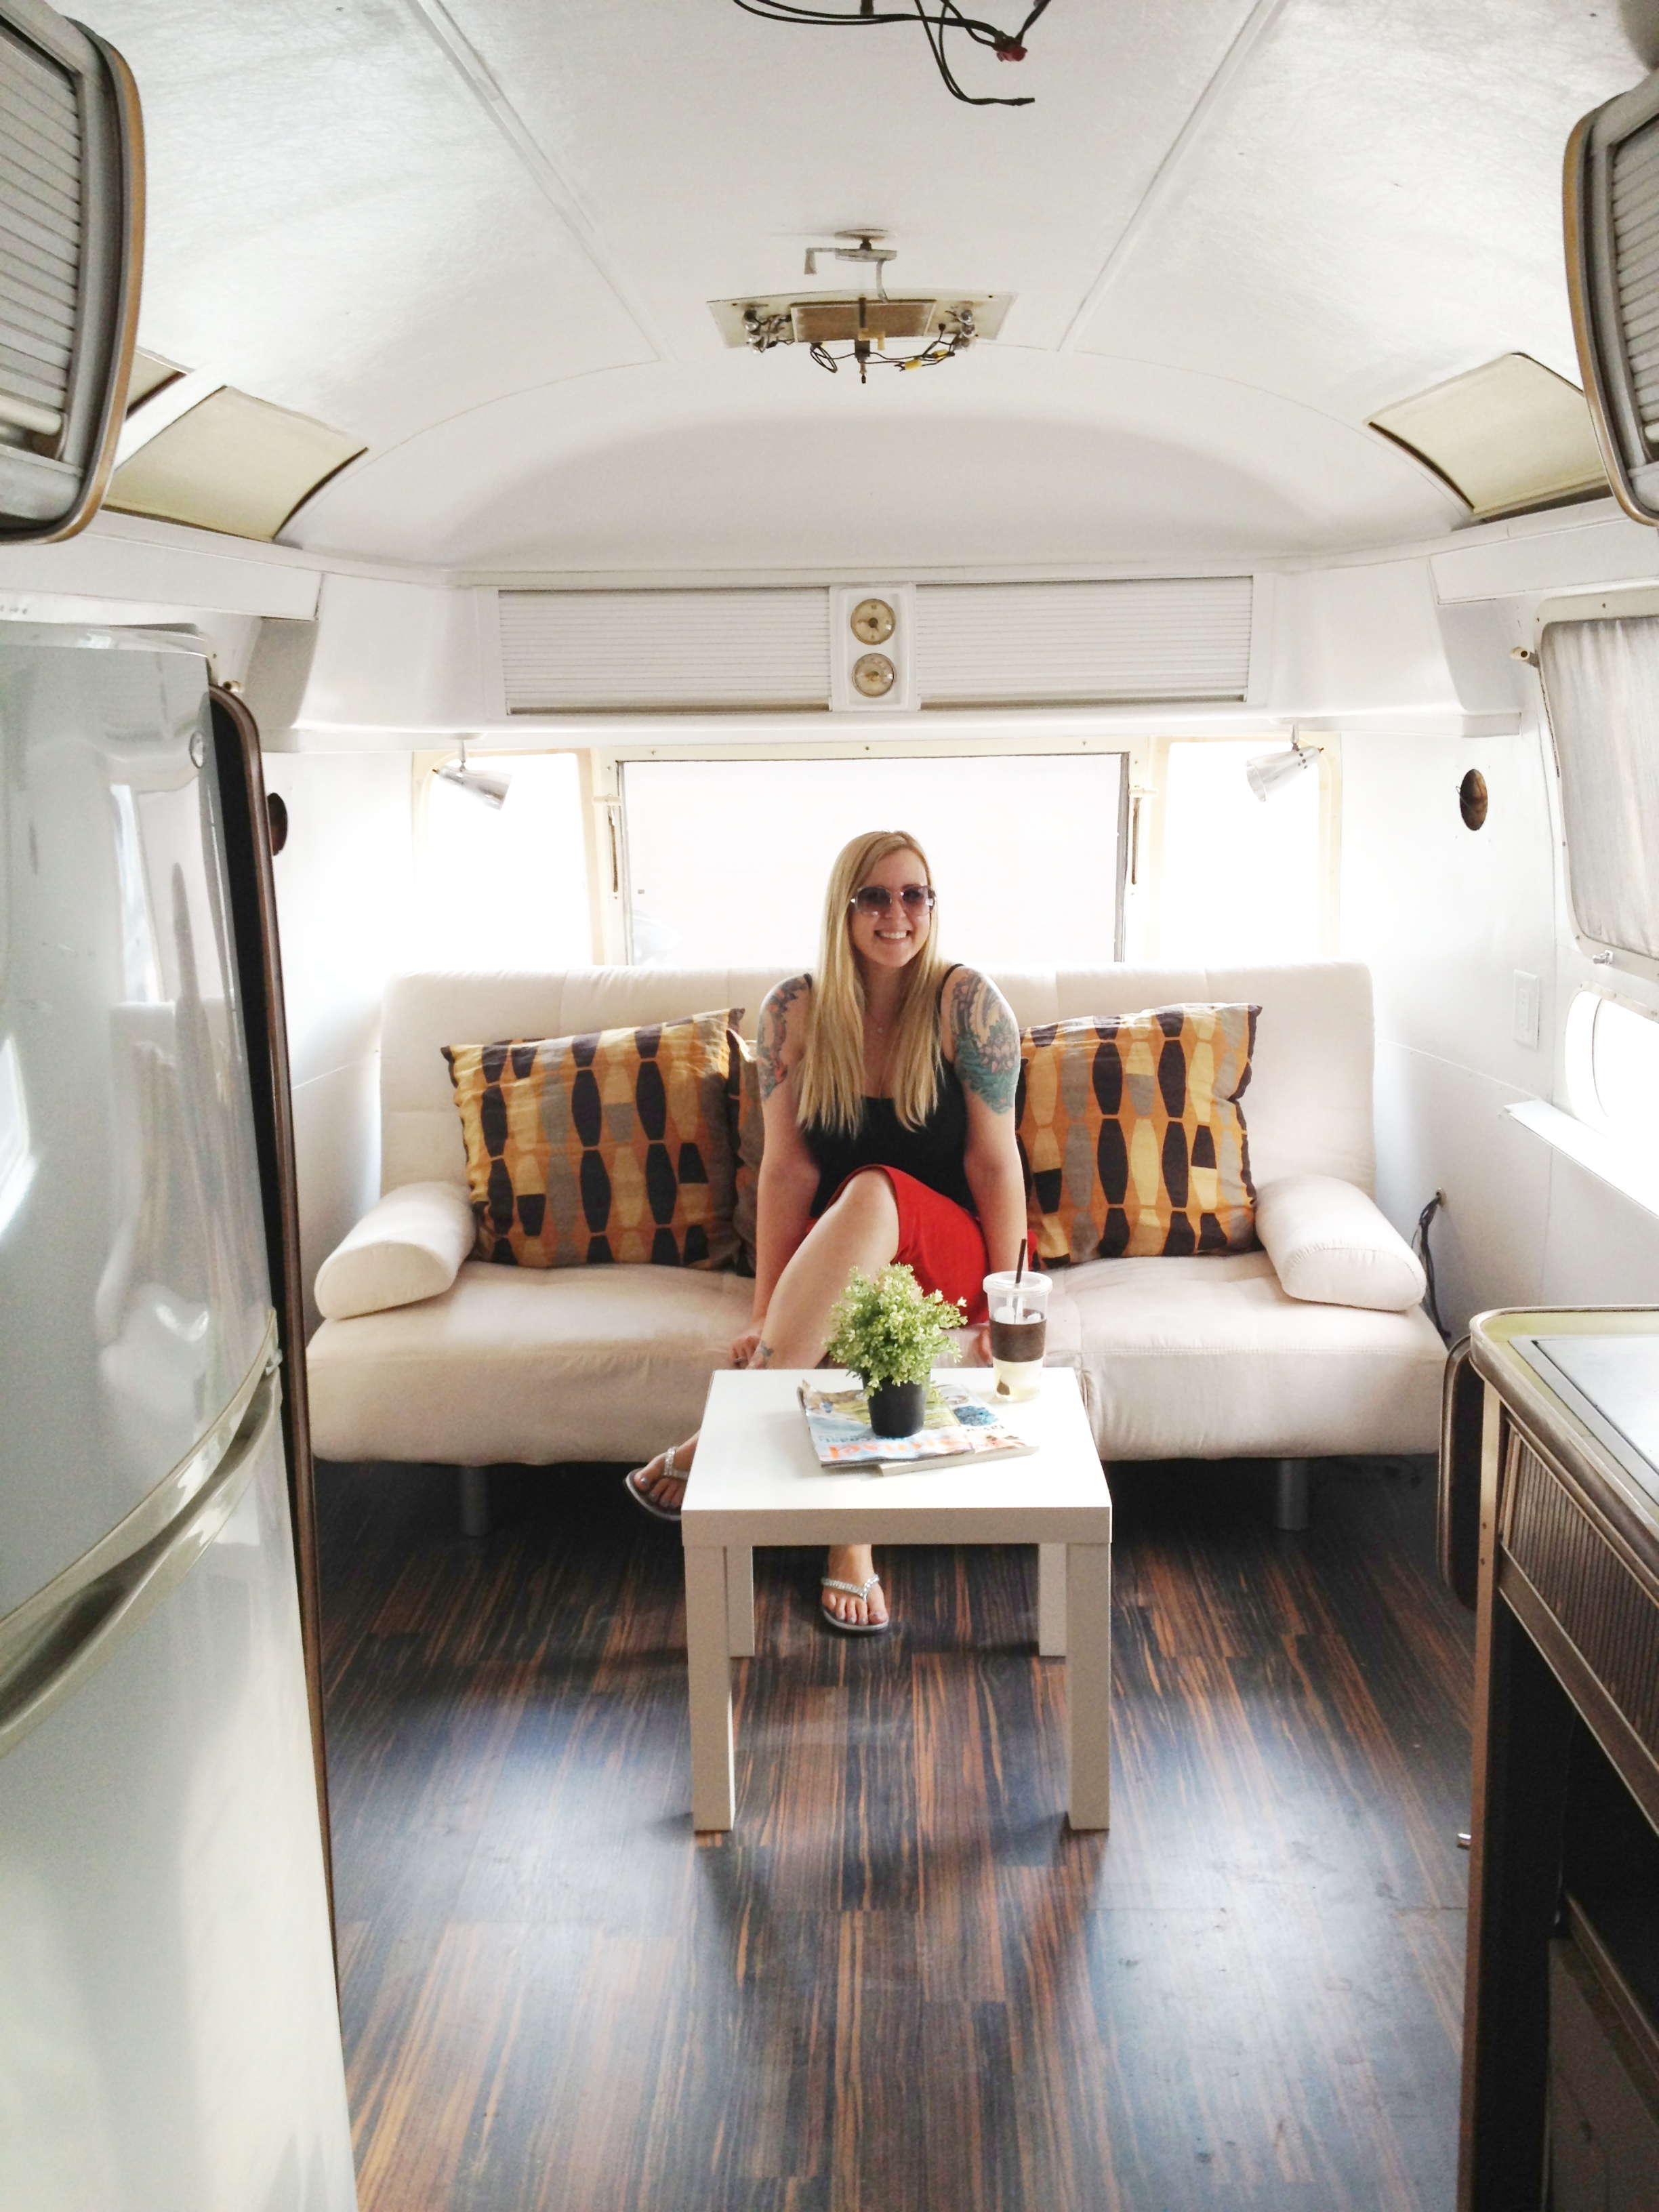 Airstream bathroom renovation